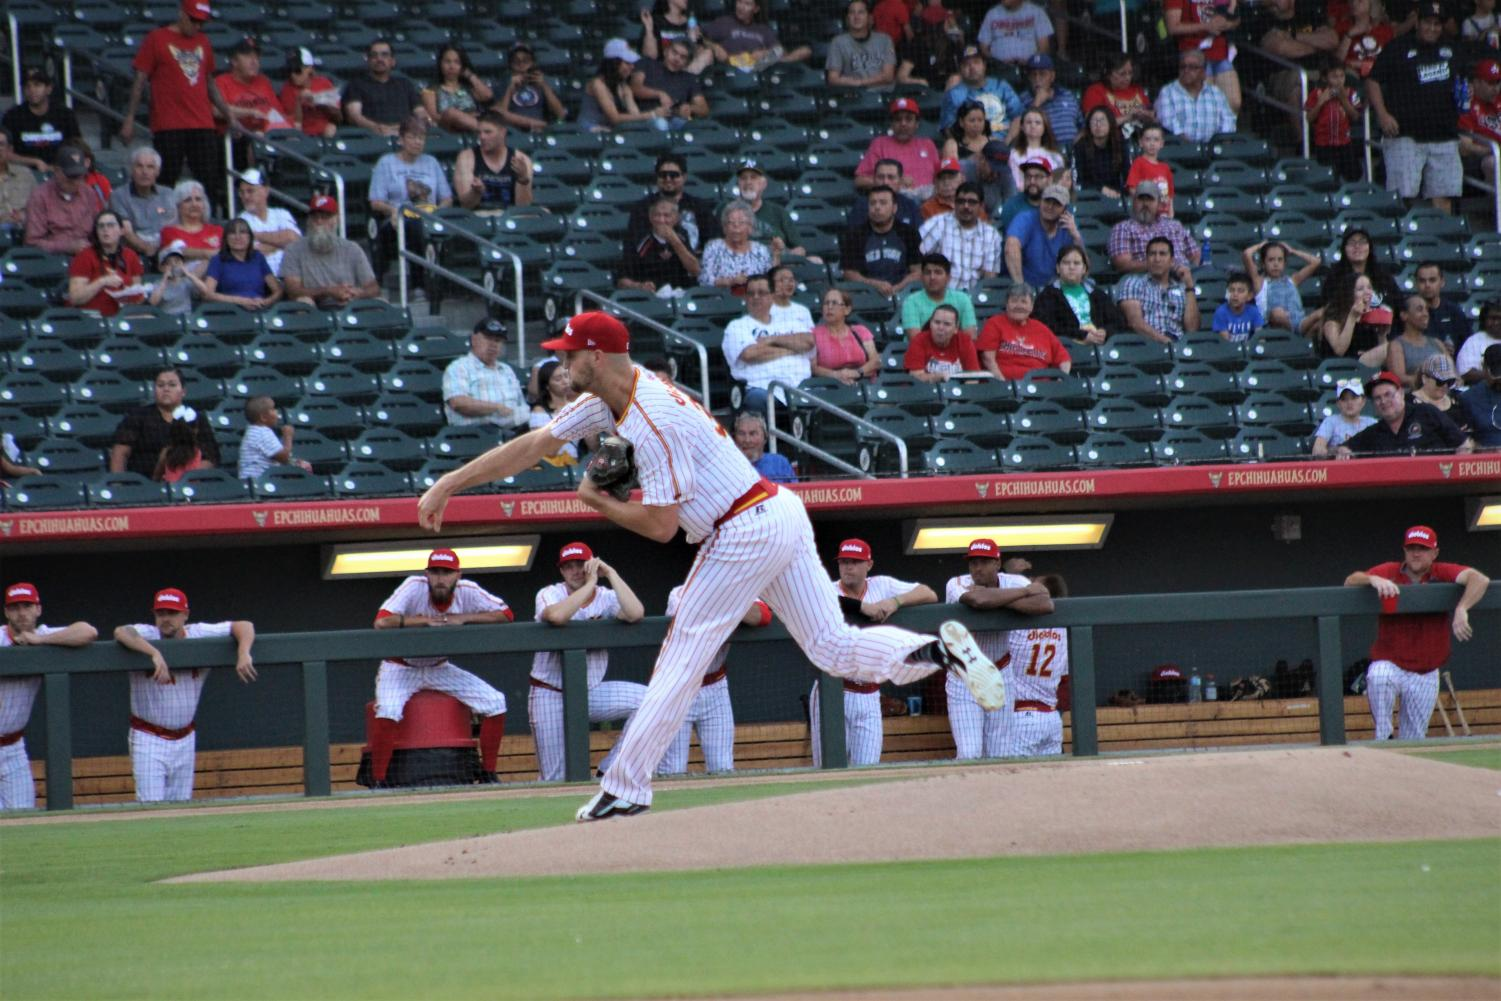 The Chihuahuas play at home on Wednesday night, June 13.